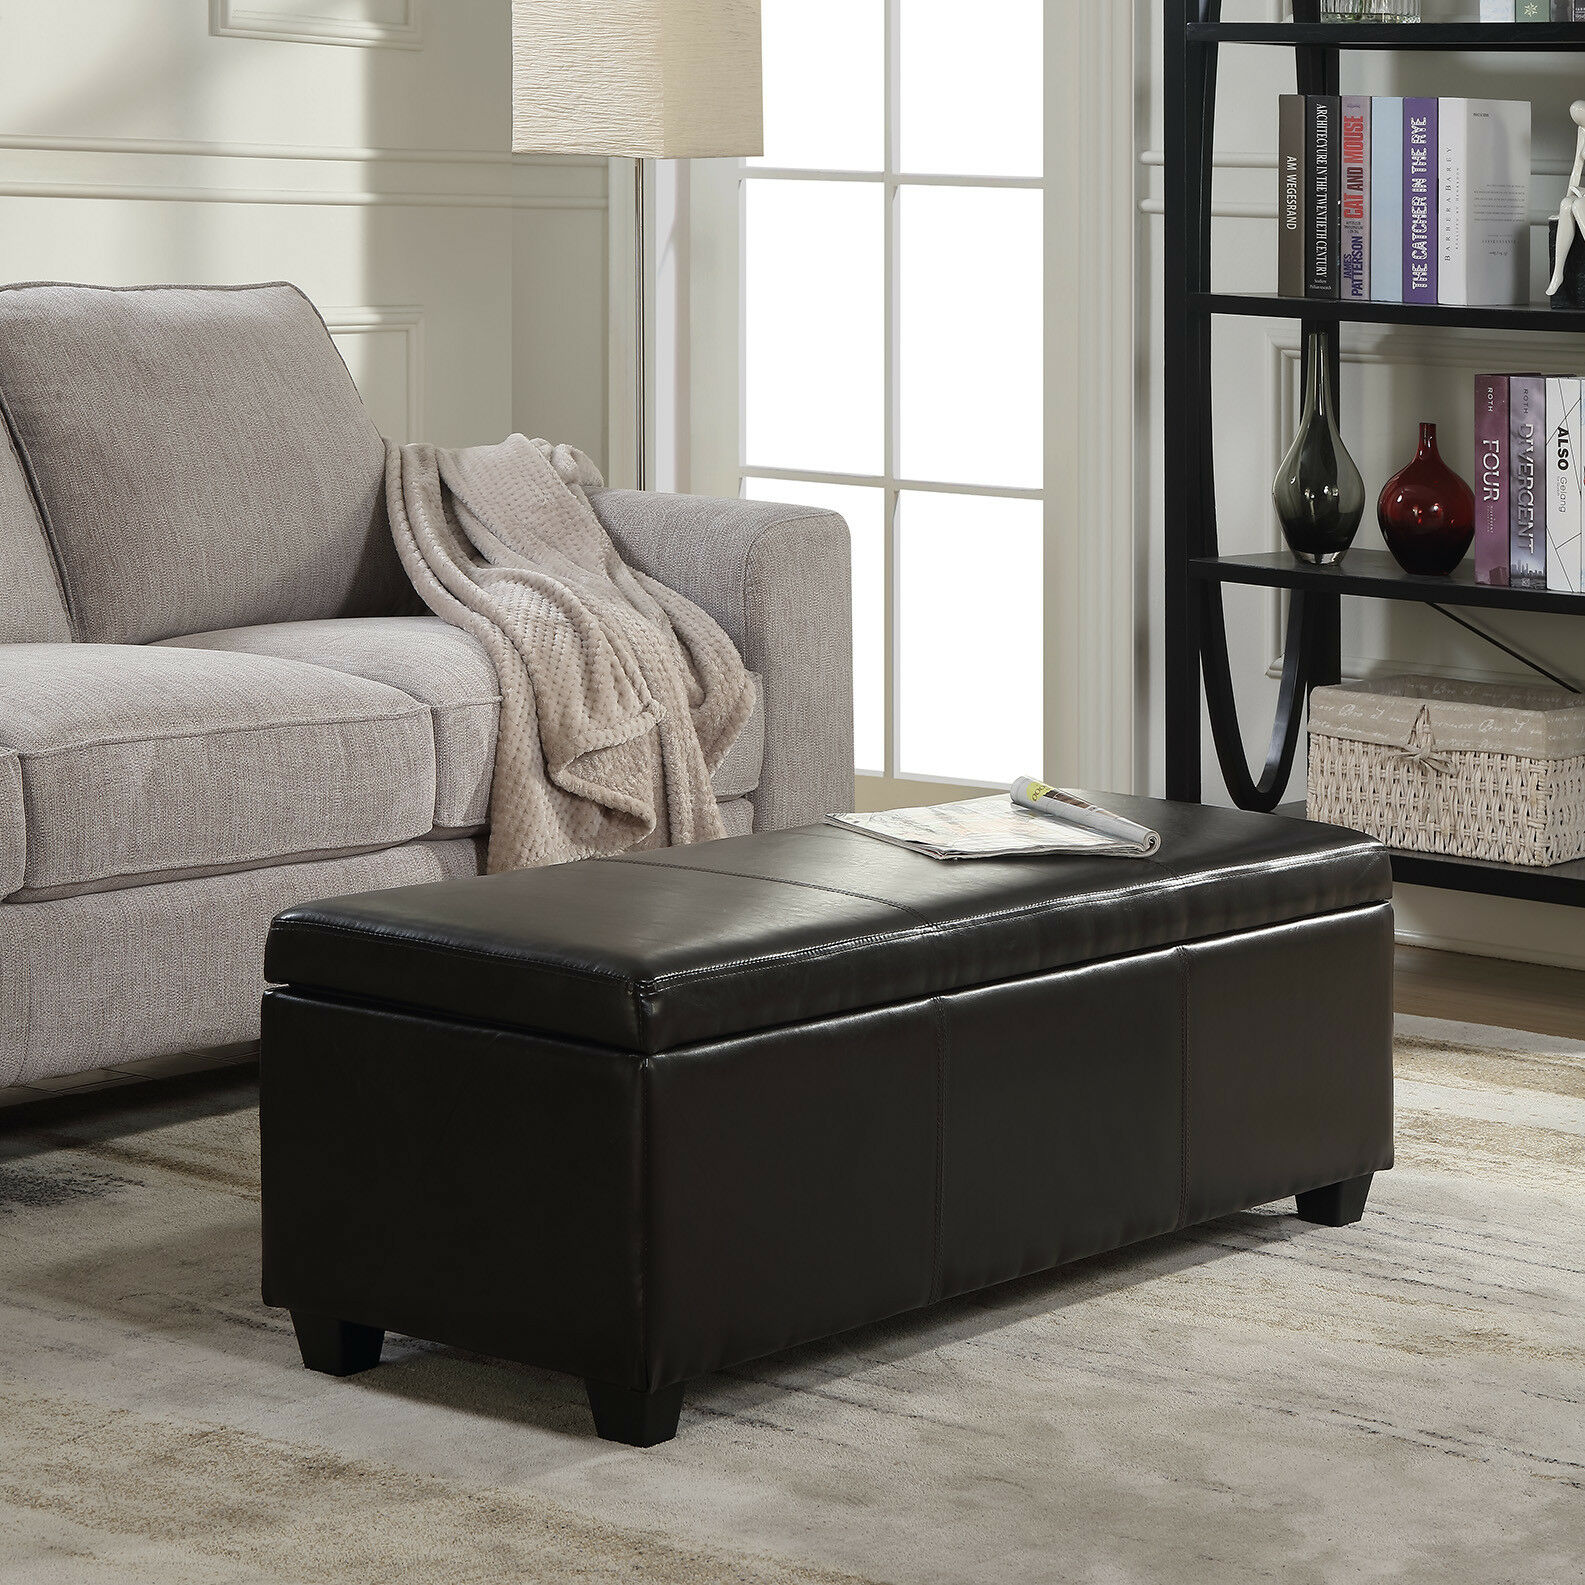 Espresso Faux Leather Storage Ottoman Large Bench Foot Rest Seat Room Decor 48 For Sale Online Ebay